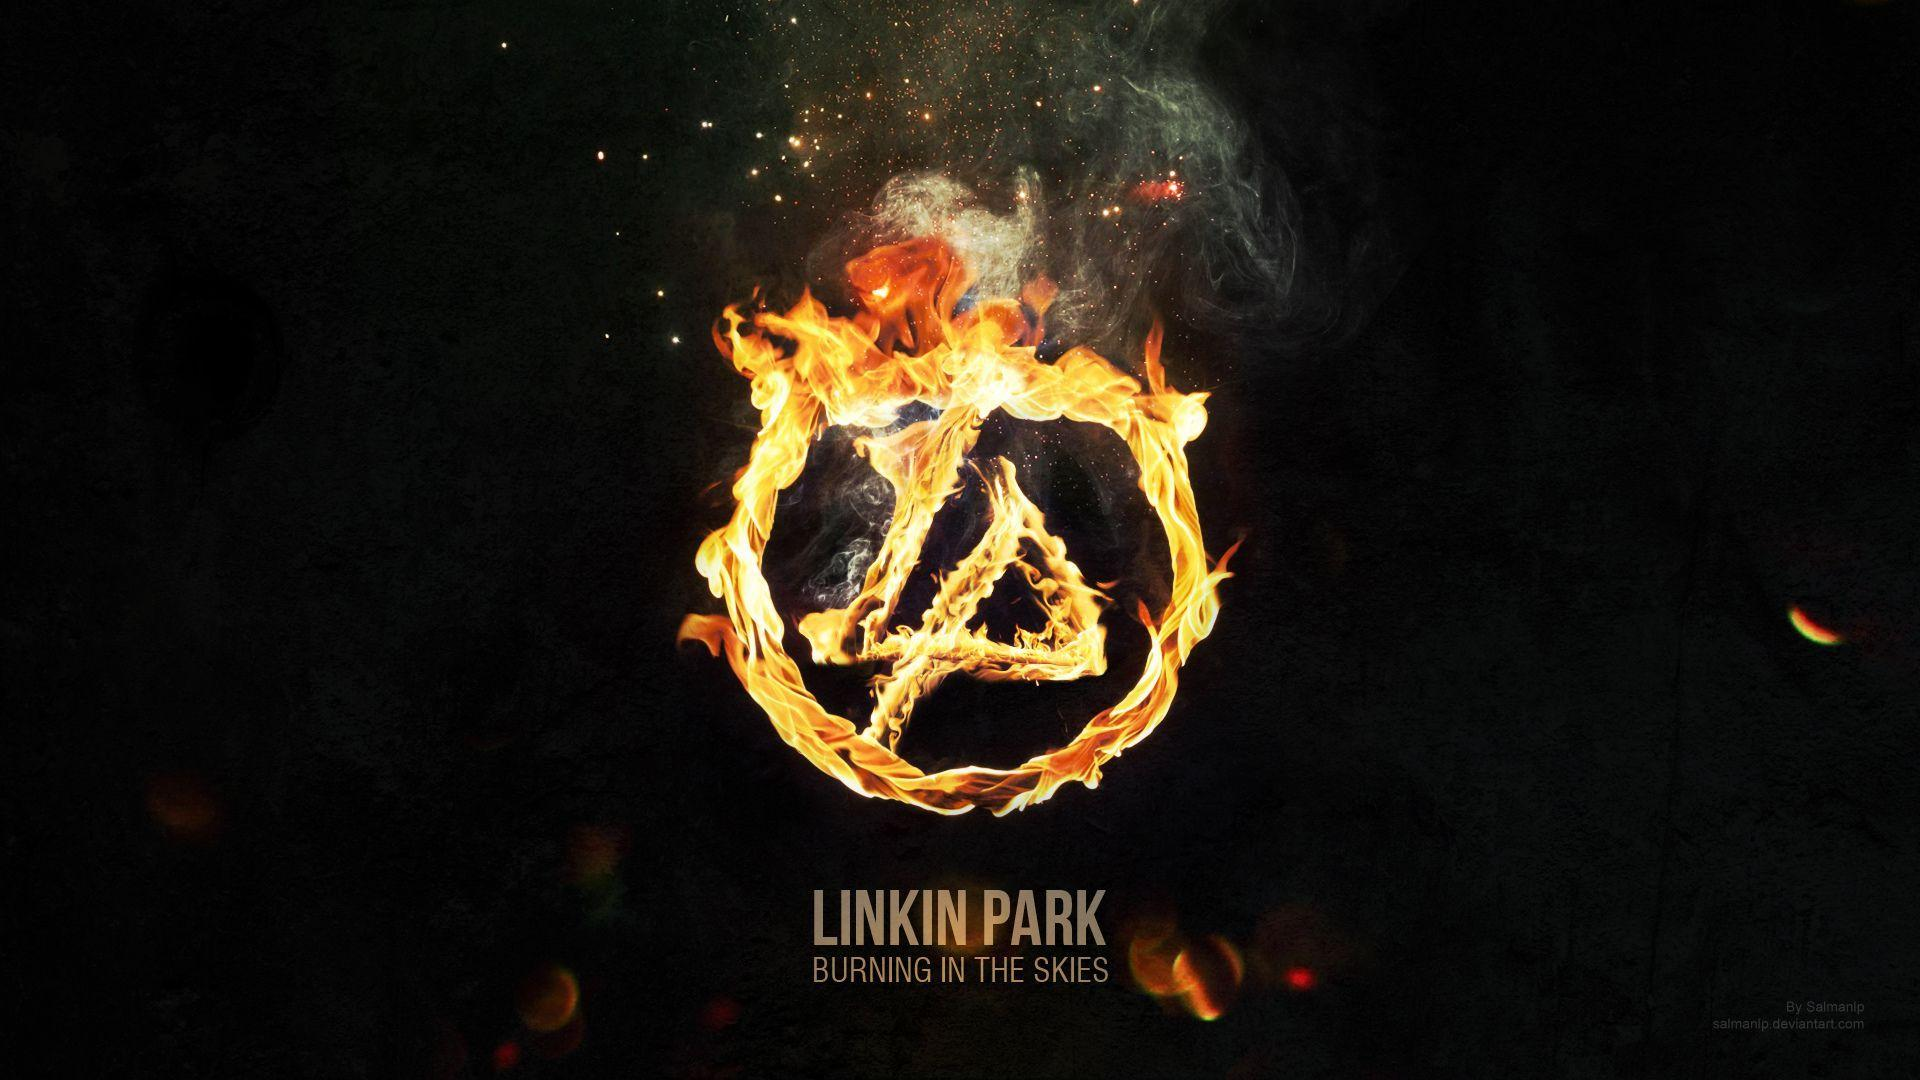 Linkin Park Wallpapers Hd 2017 Wallpaper Cave